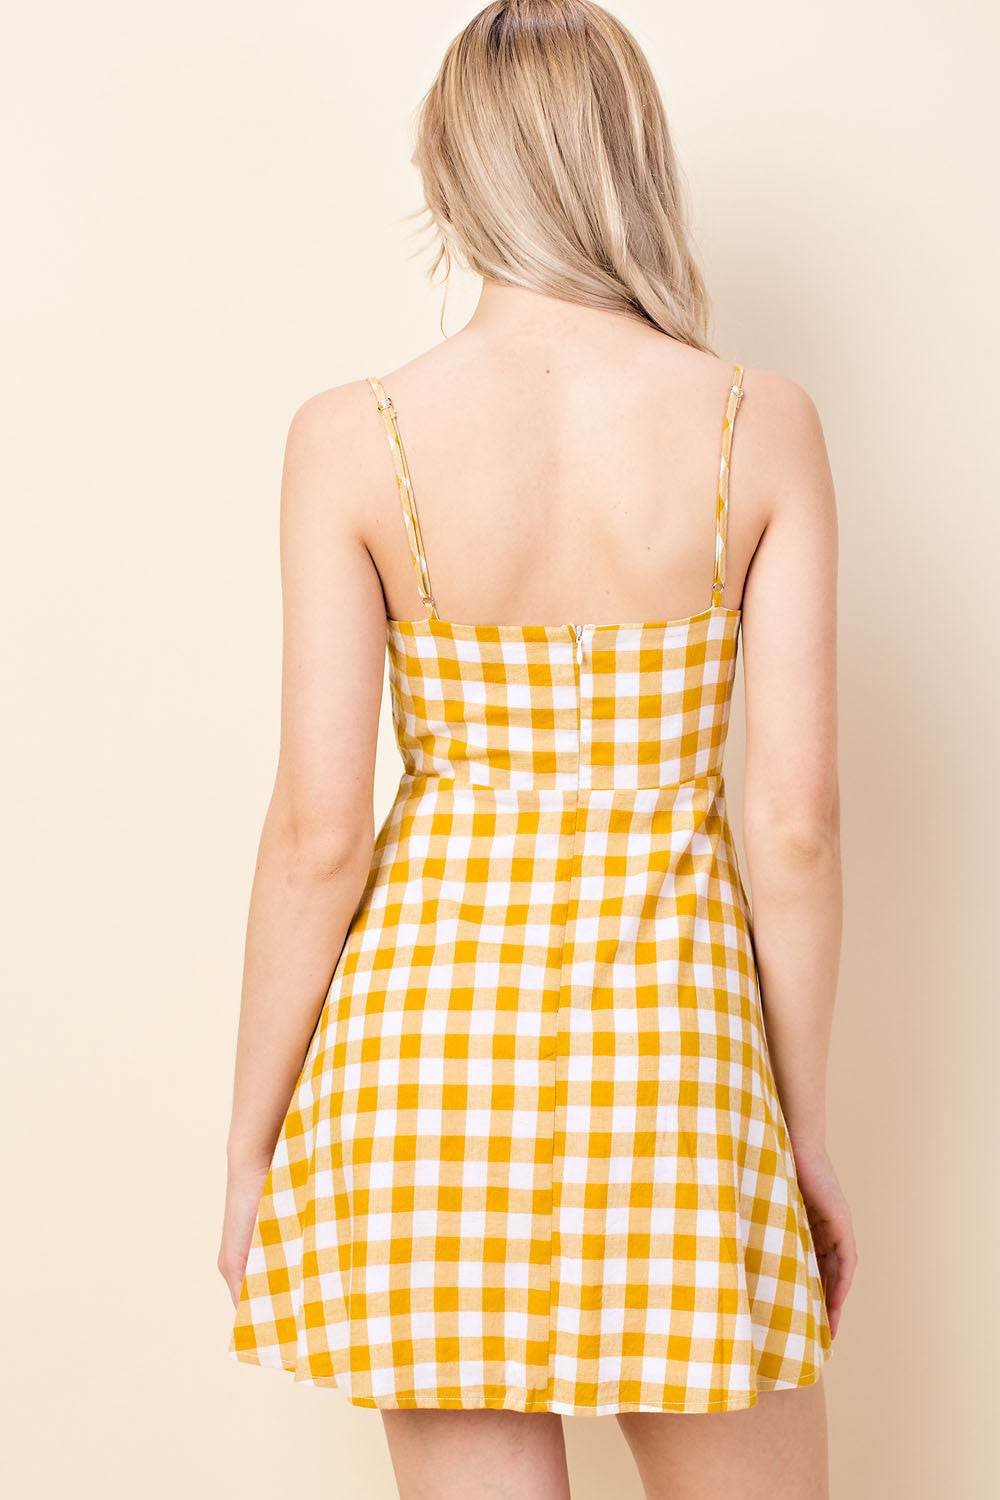 Here Comes The Sun Gingham Dress